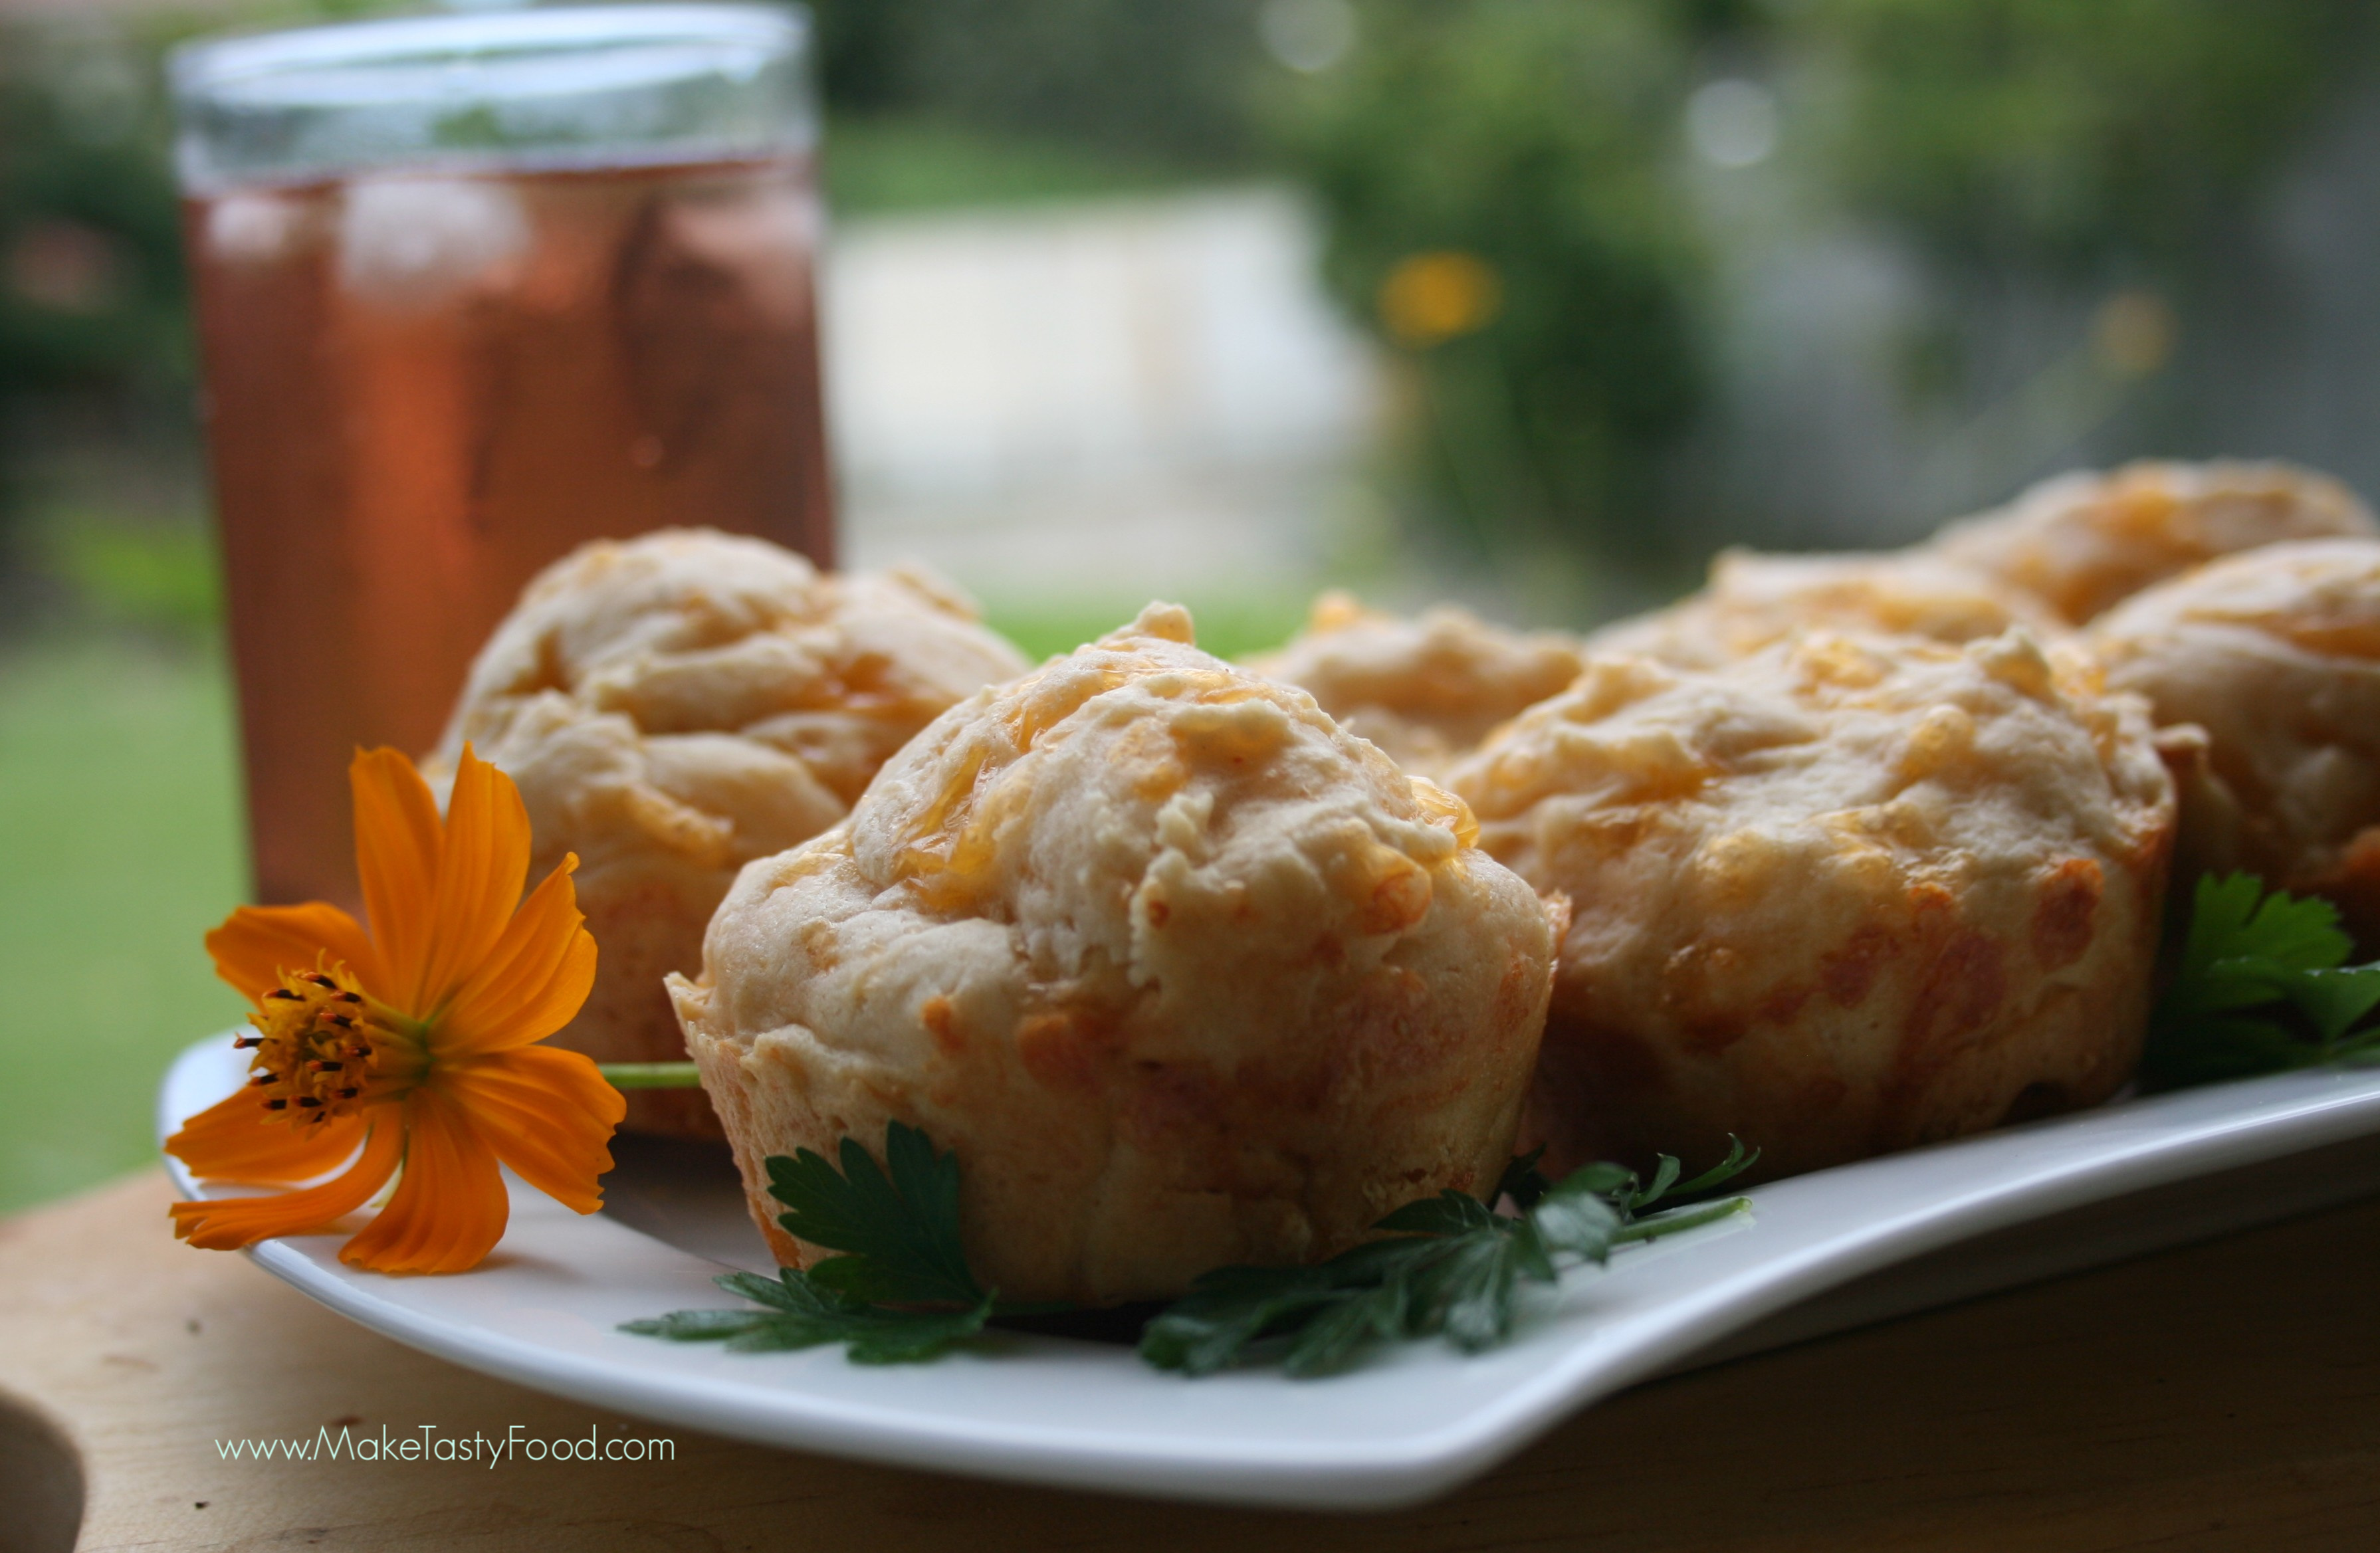 iced tea and cheese scone on a serving plate